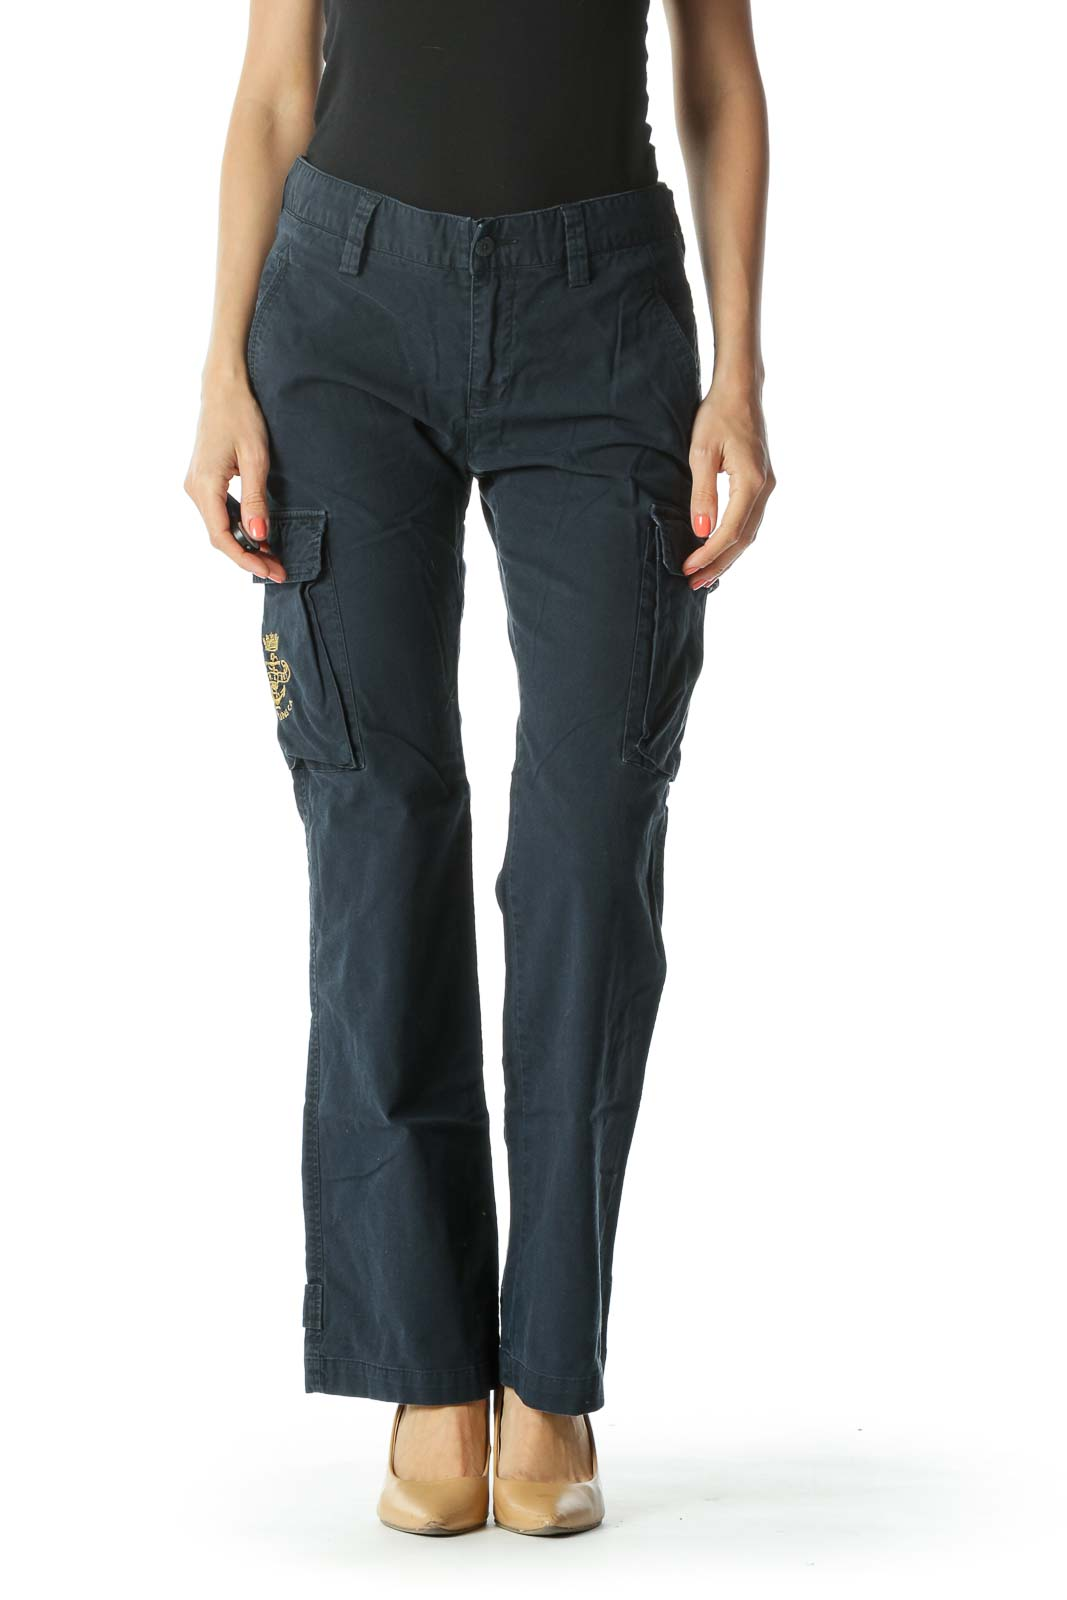 Navy Cargo Pants with Leg Pockets and Gold Embroiderey